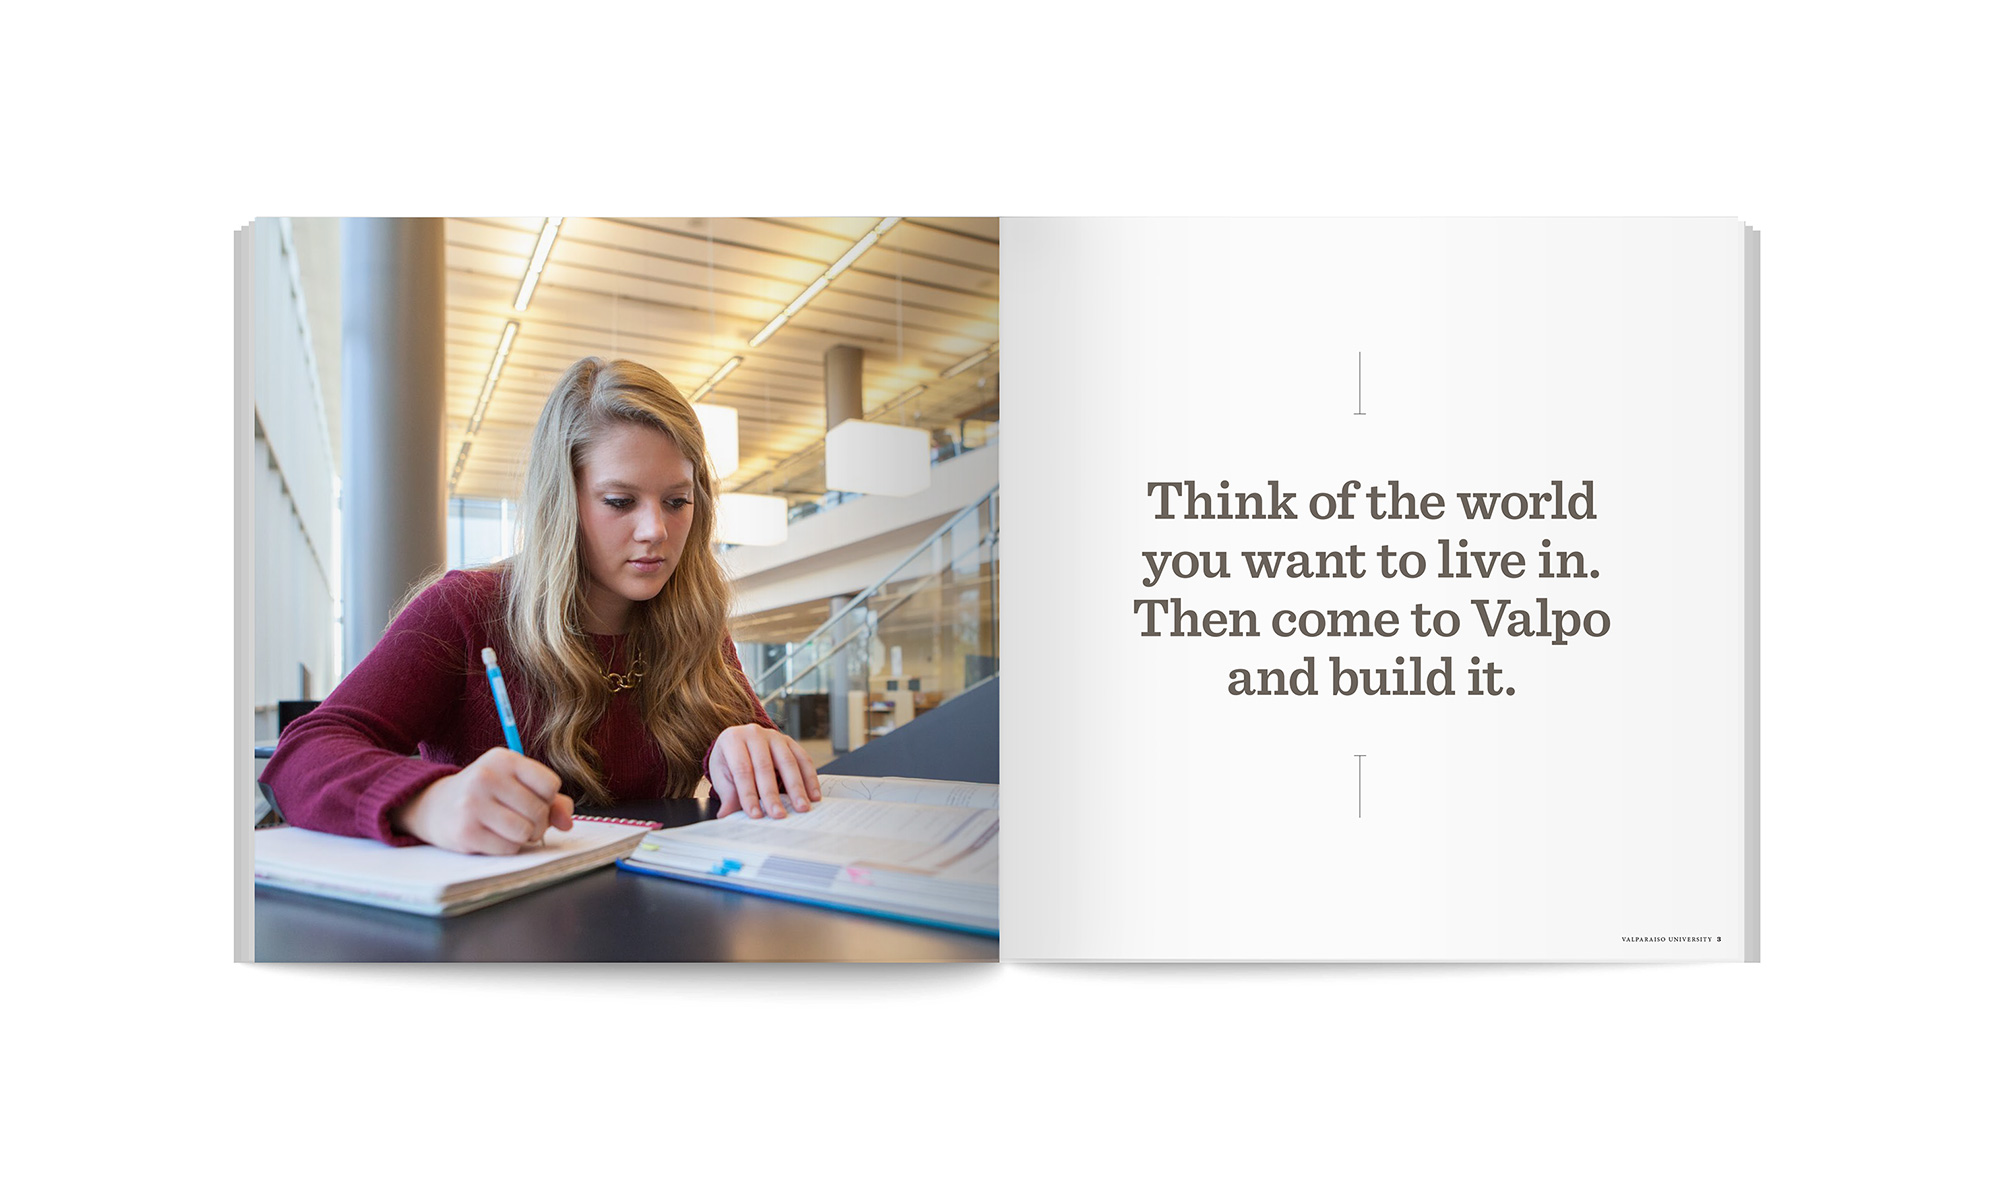 Brochure interior with text Think of the world you want to live in. Then come to Valpo and build it.